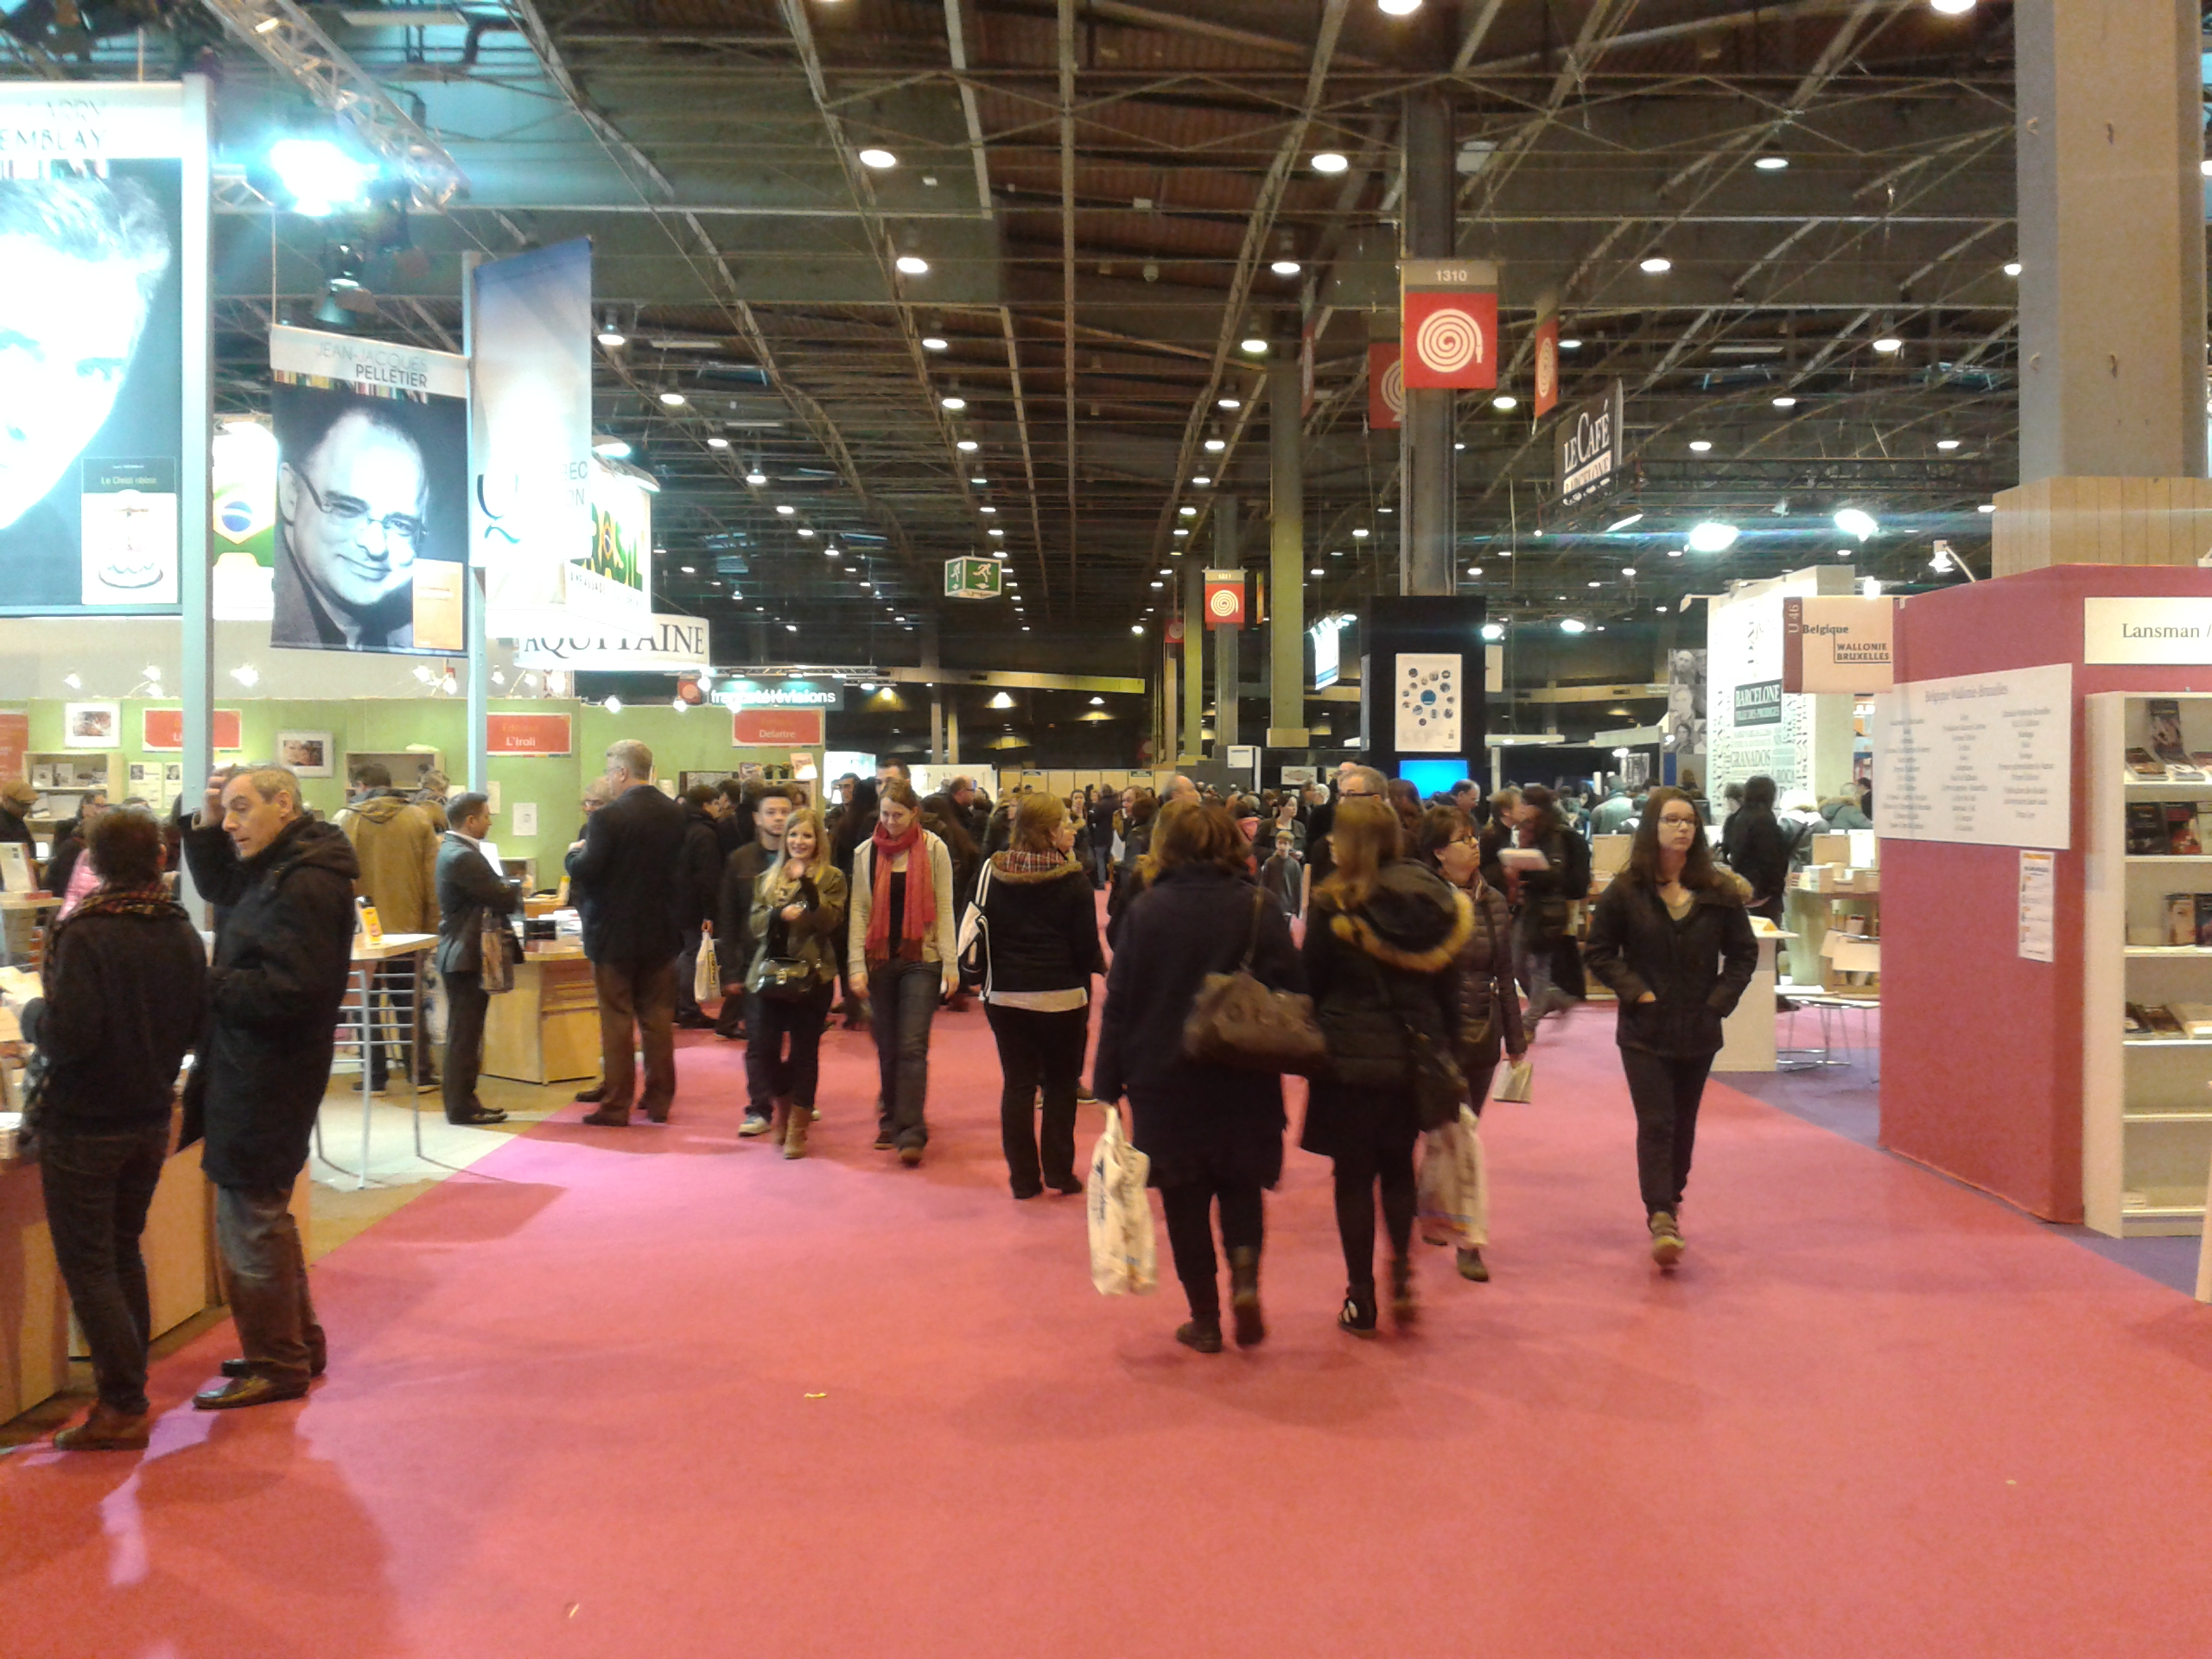 Le salon du livre paris on y va for Salon du chien 2017 paris